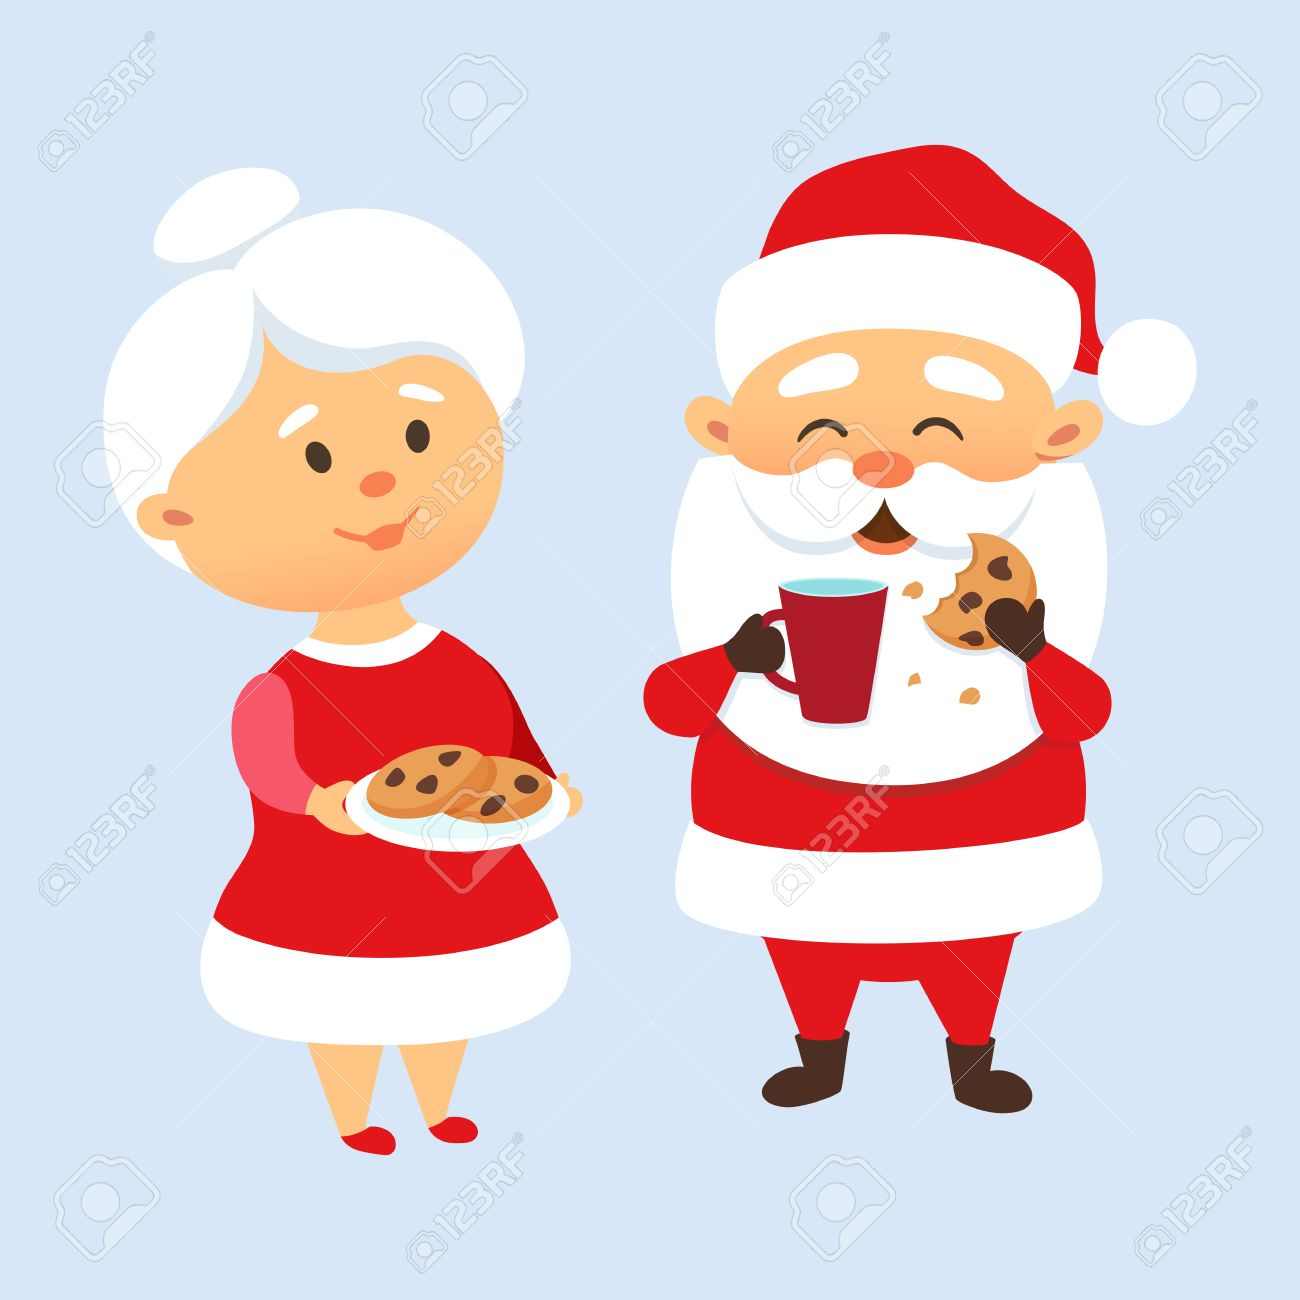 Santa Claus eating a cookies and drinking milk with his wife.